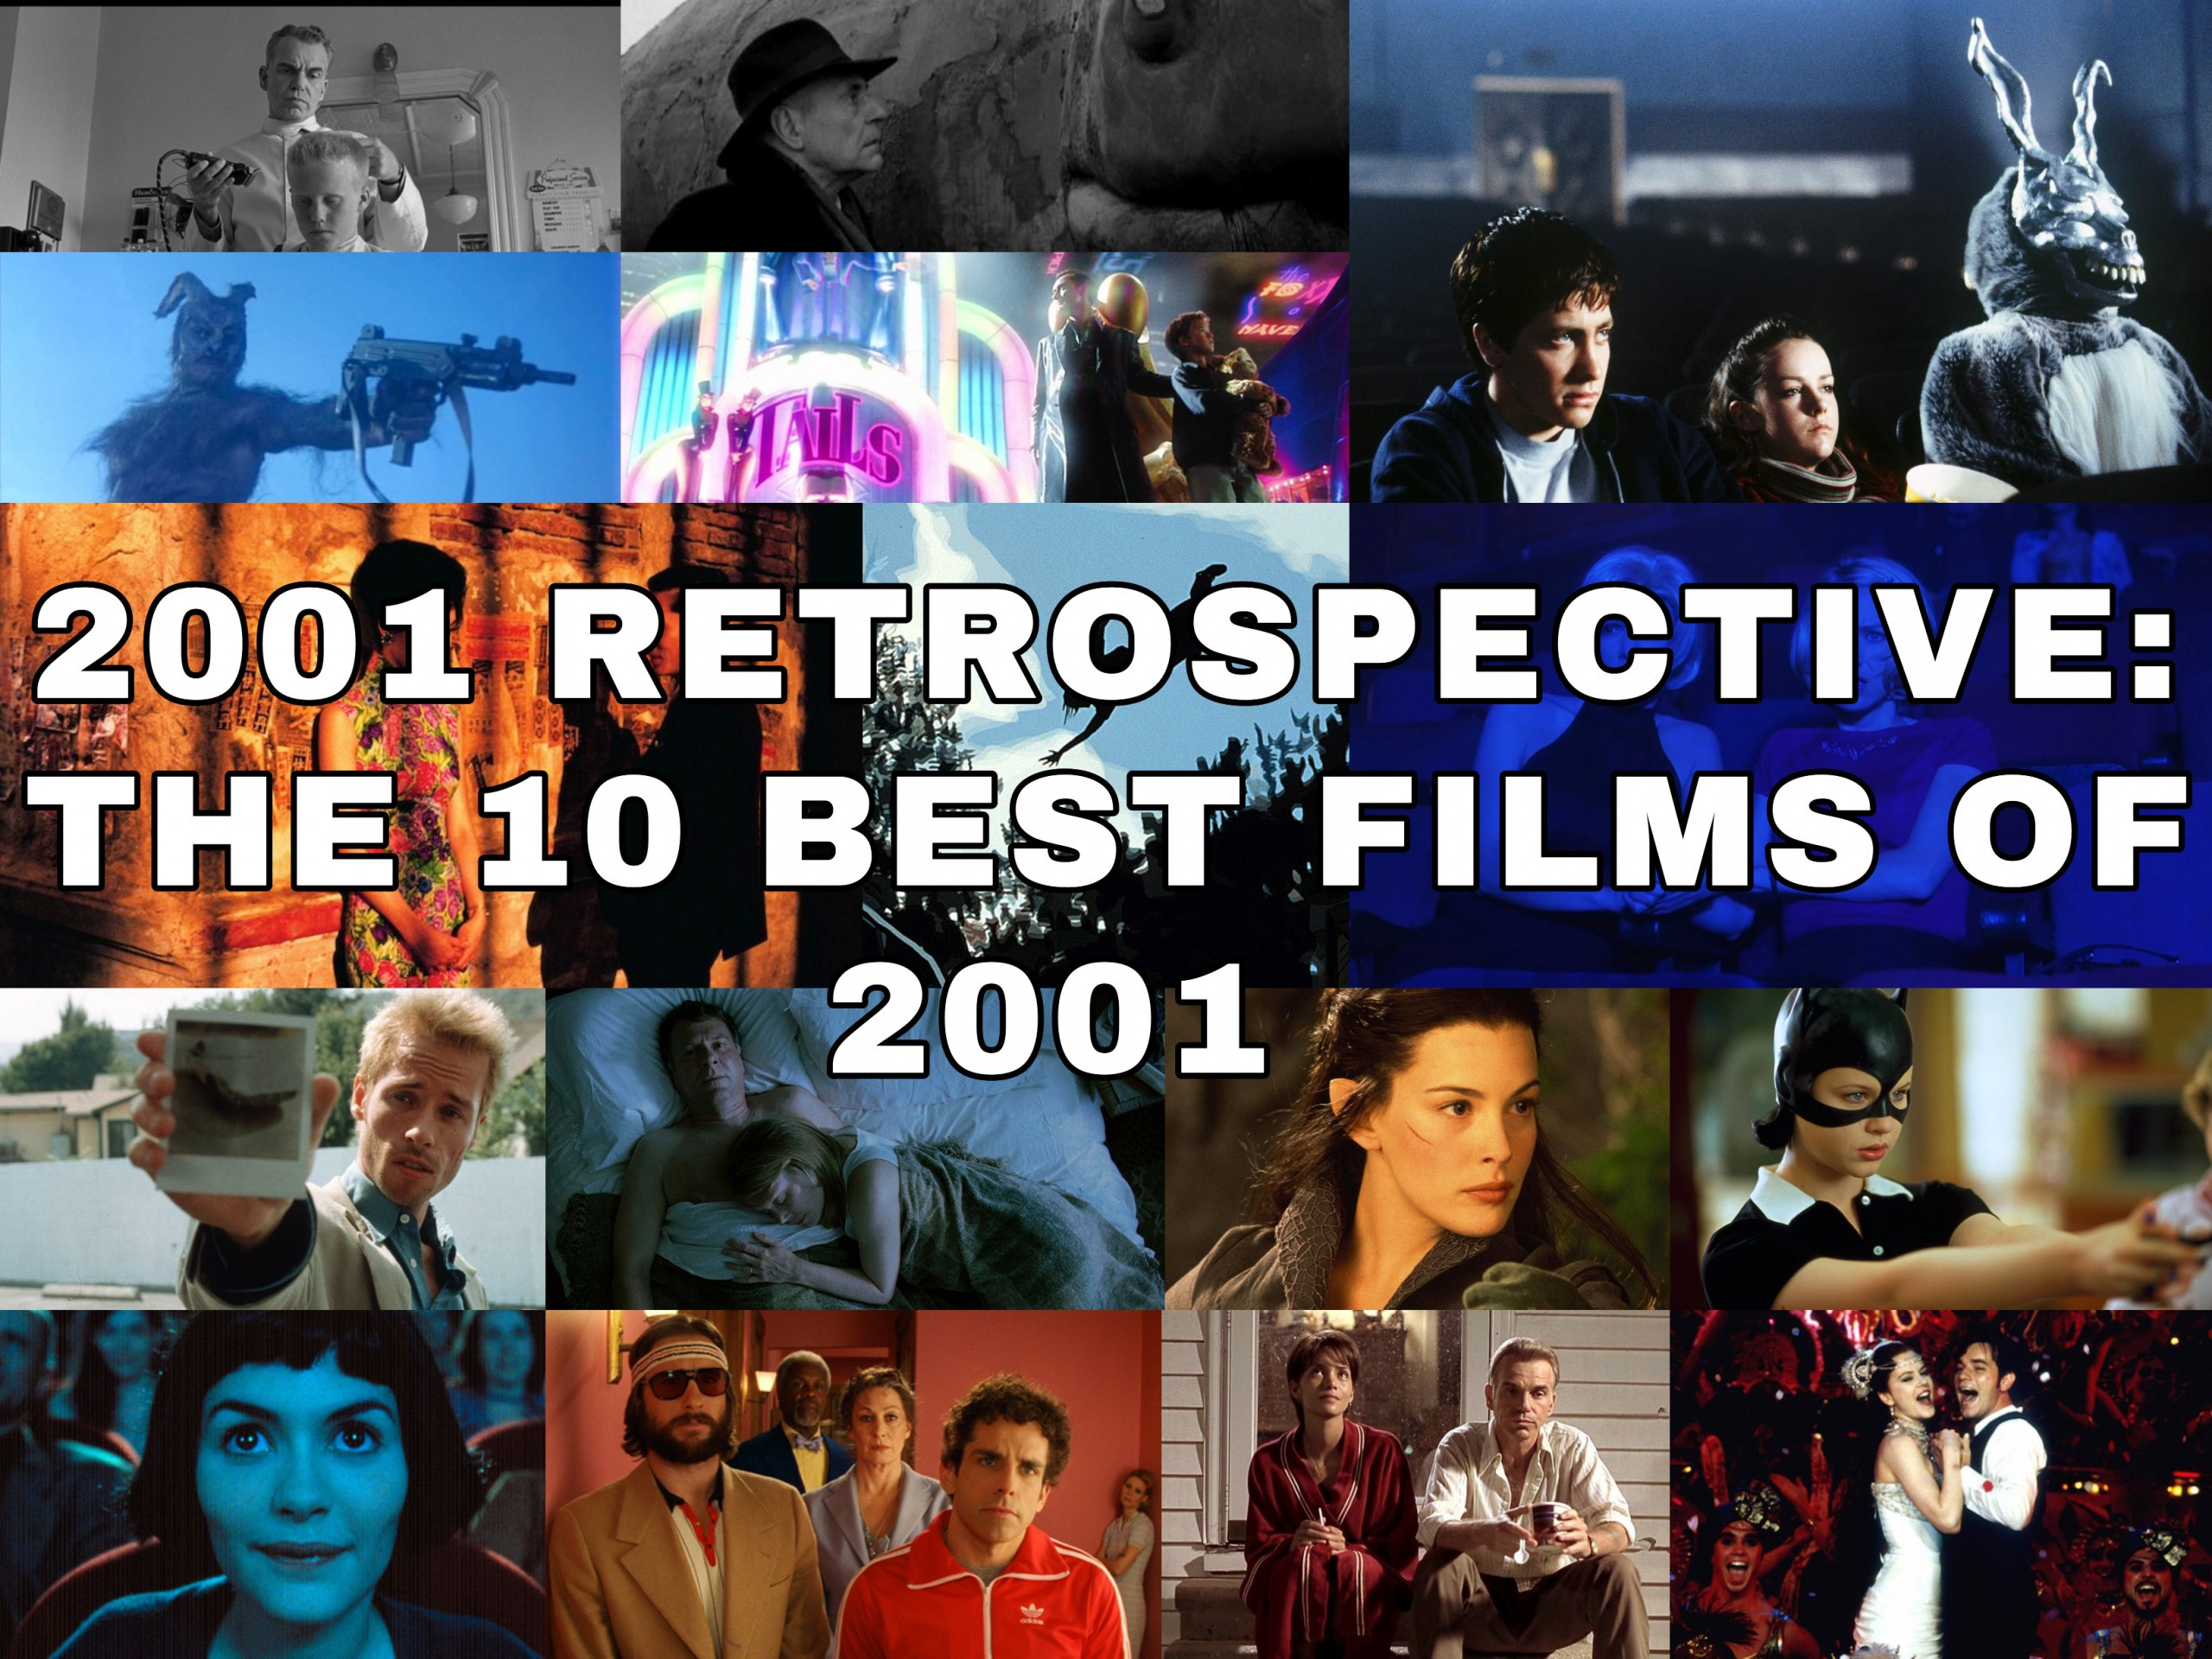 2001 Retrospective: The 10 Best Films of 2001